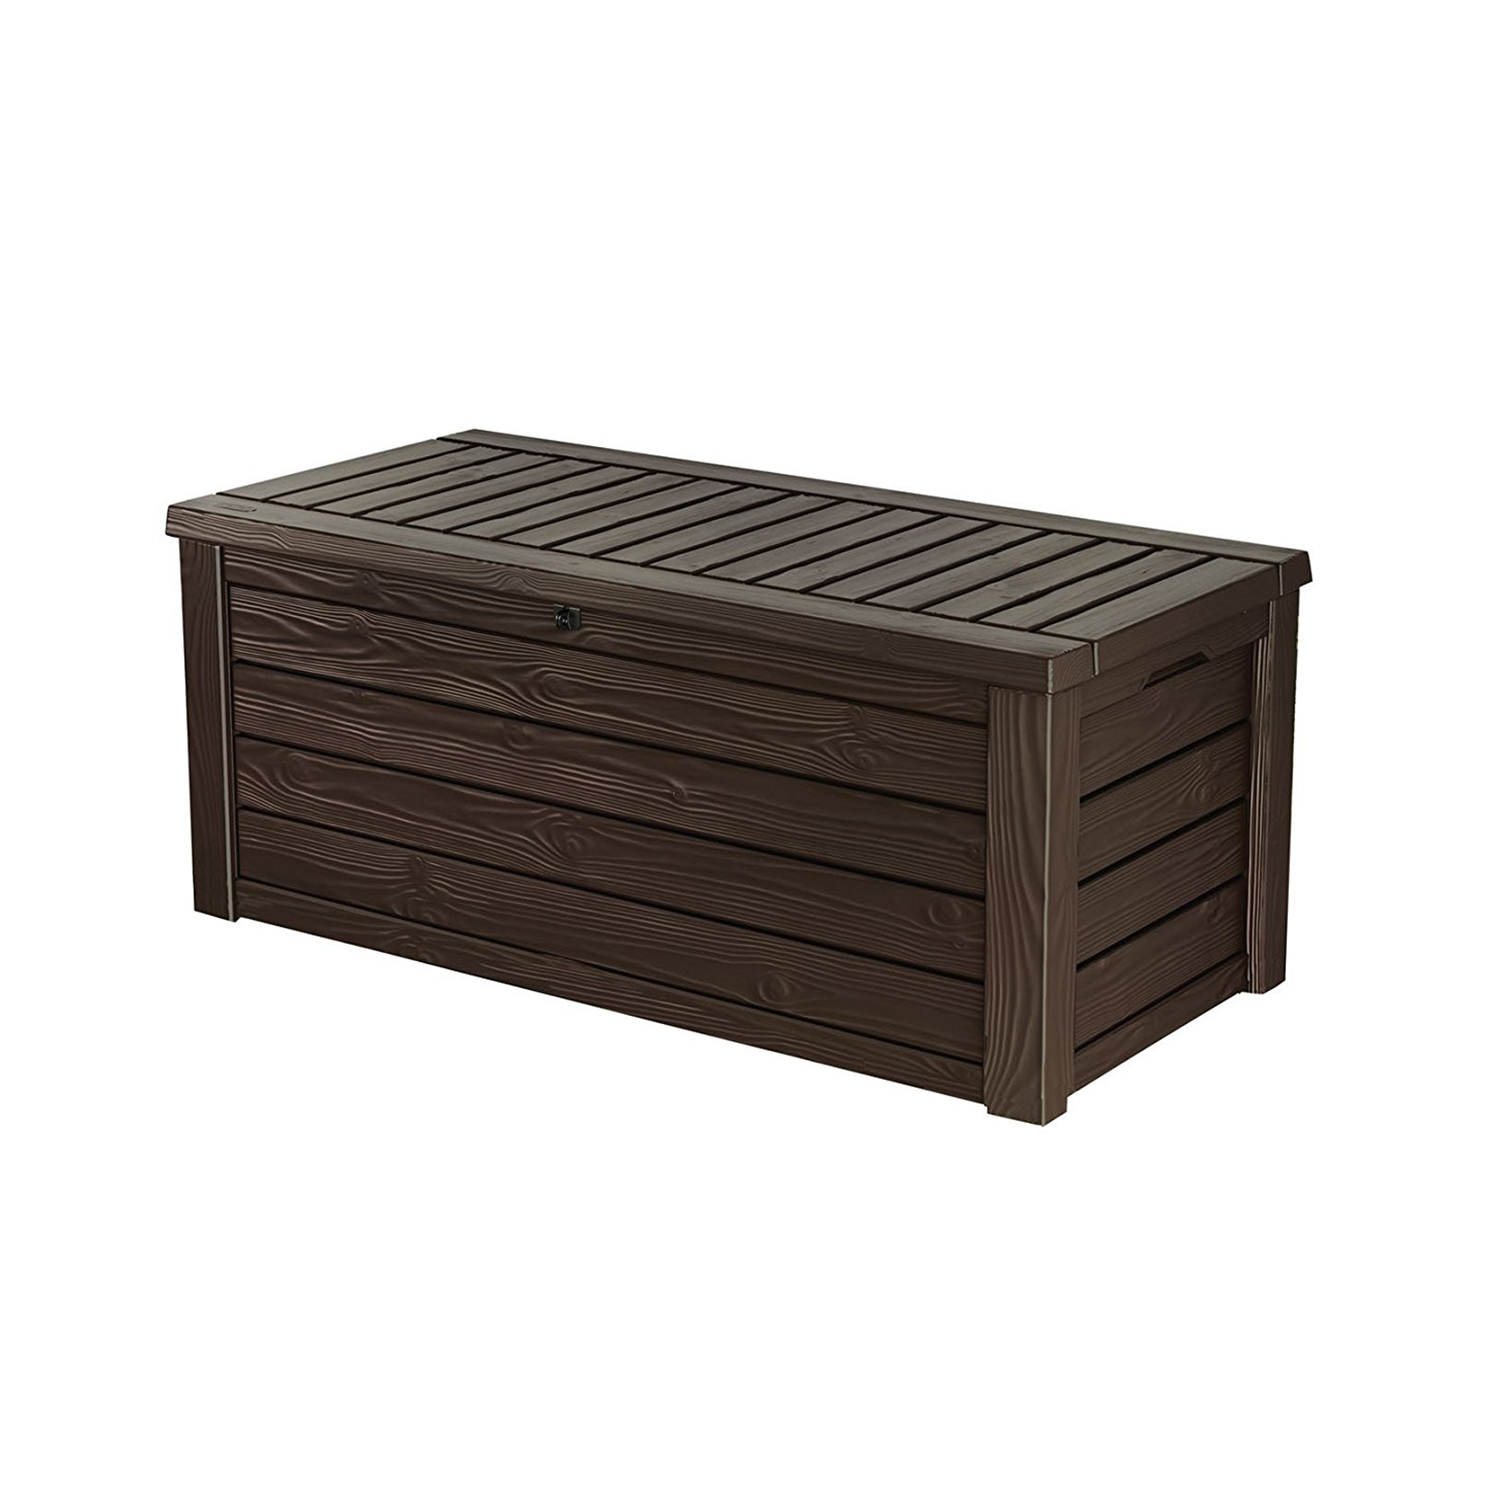 Keter Westwood 150 Gallon All Weather Outdoor Patio Storage Deck